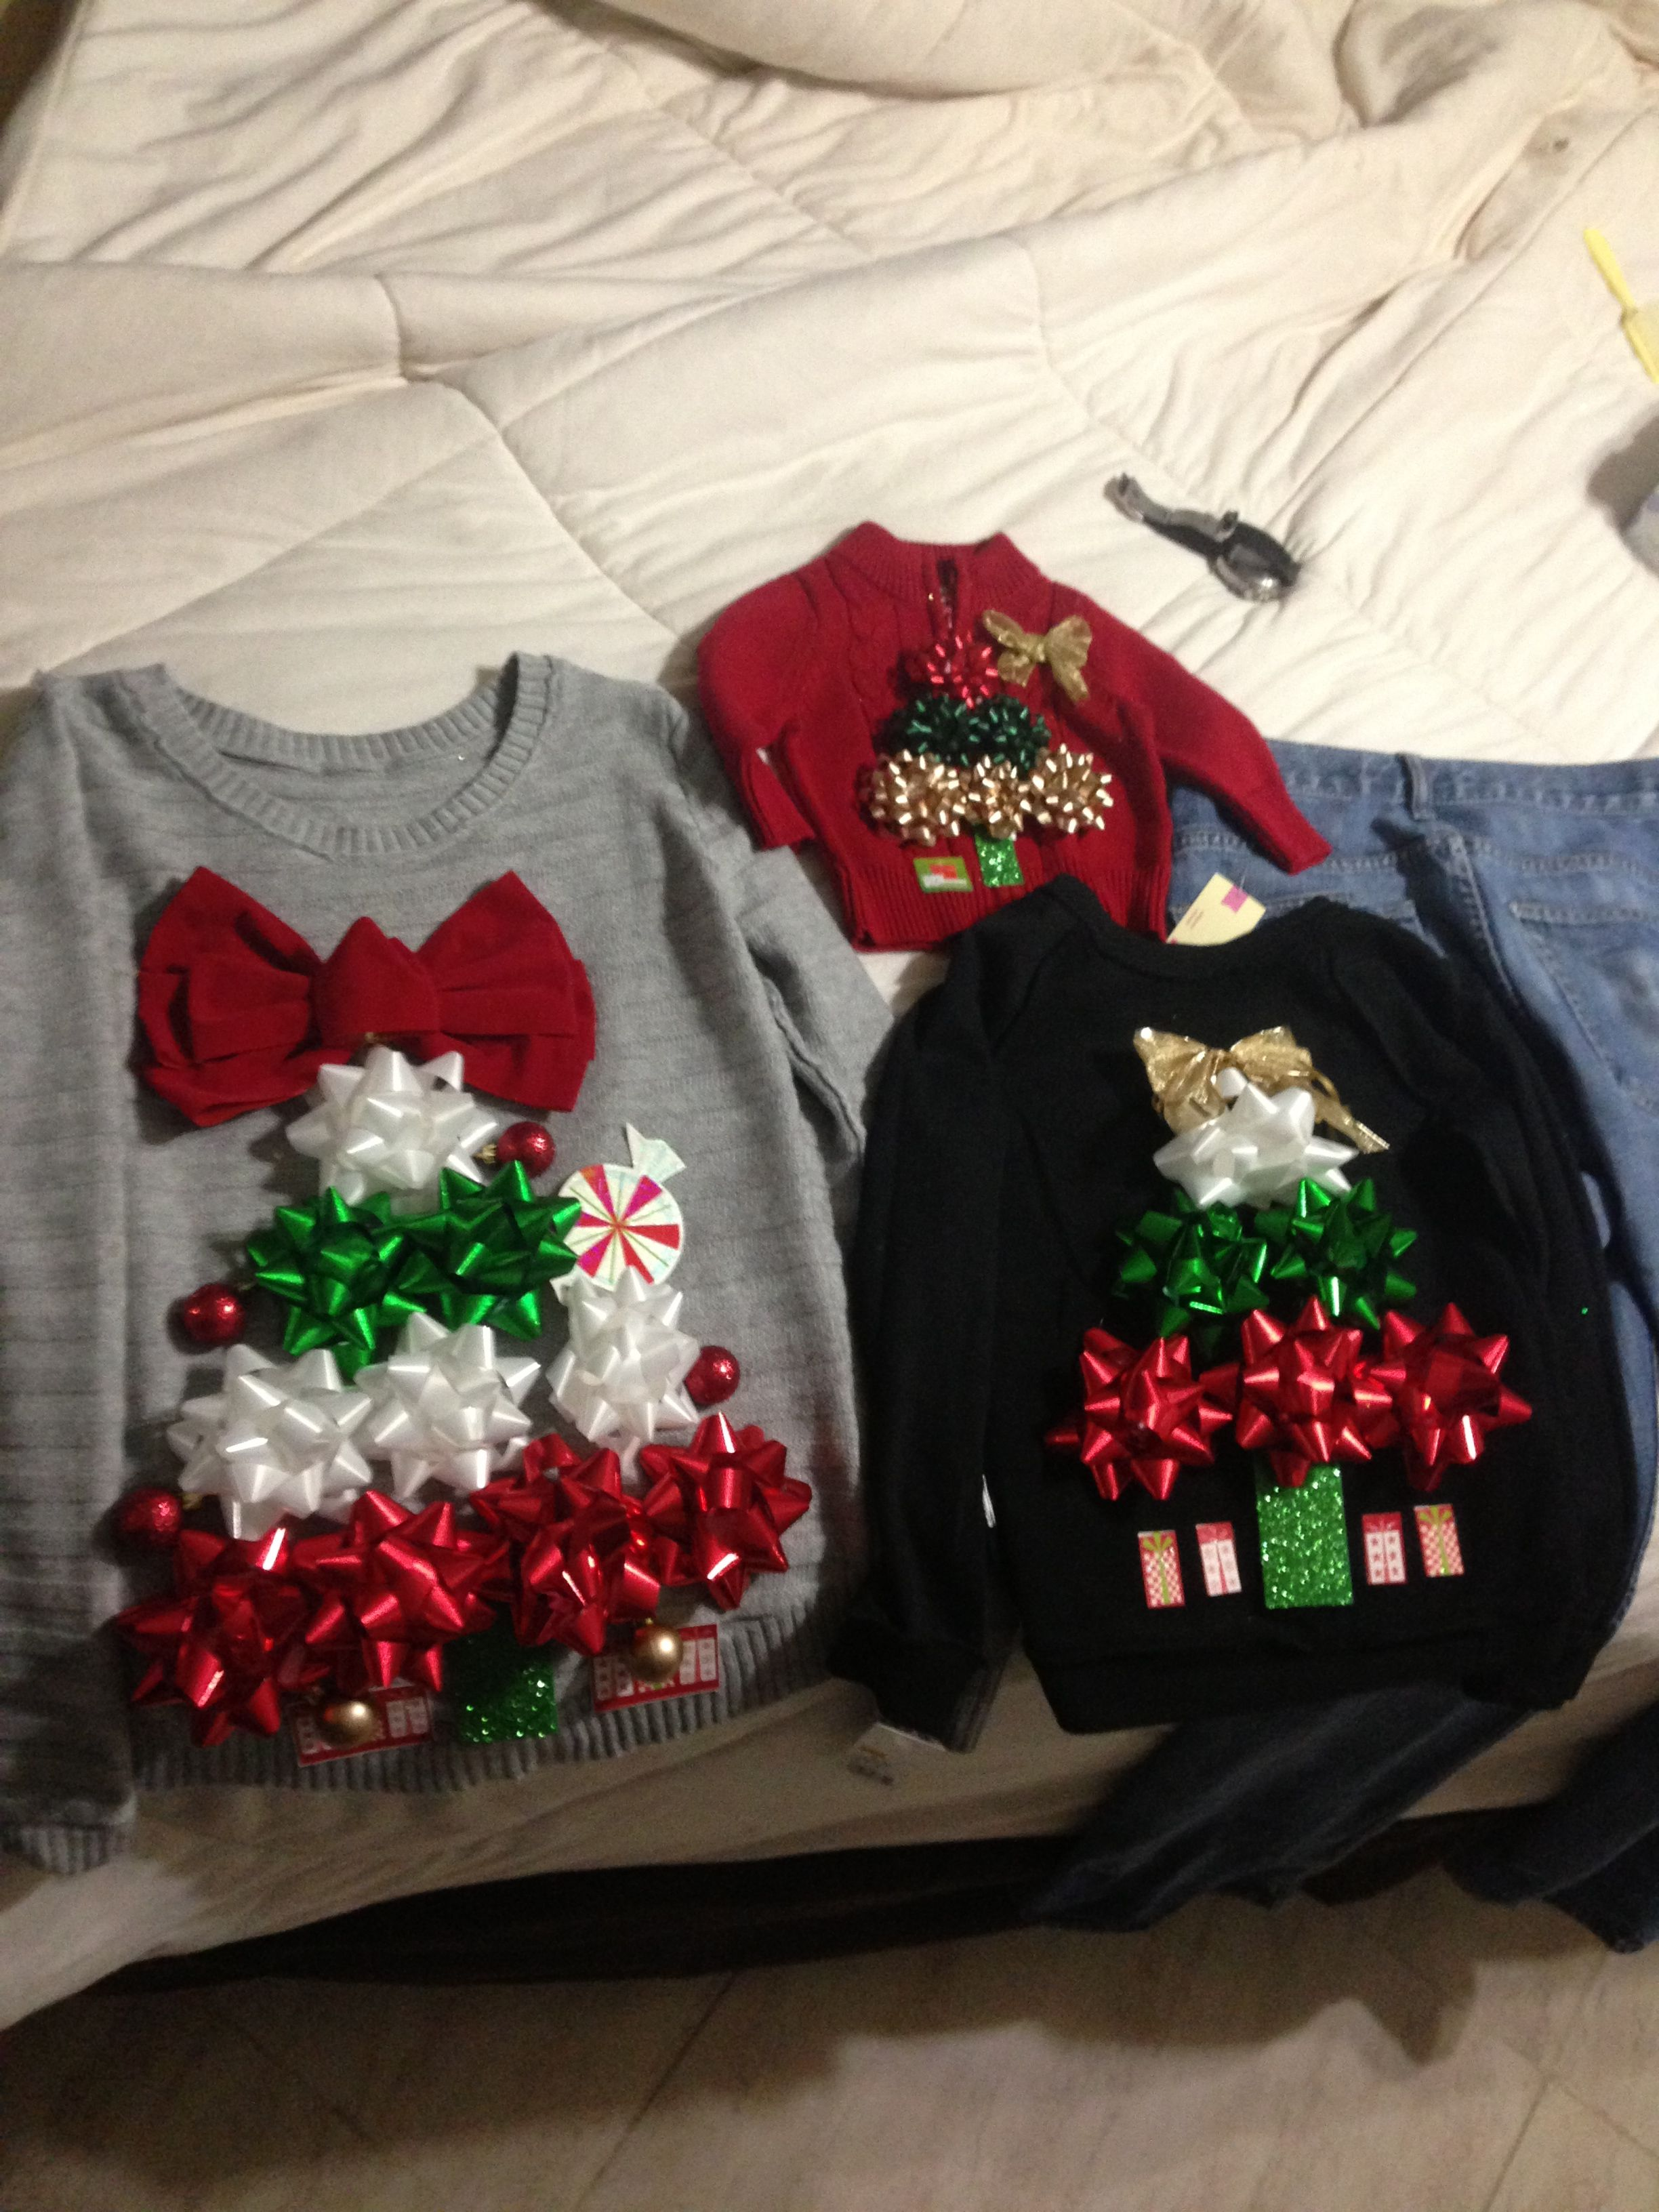 Diy Ugly Christmas Sweaters Using Gift Bows And Double Stick Tape